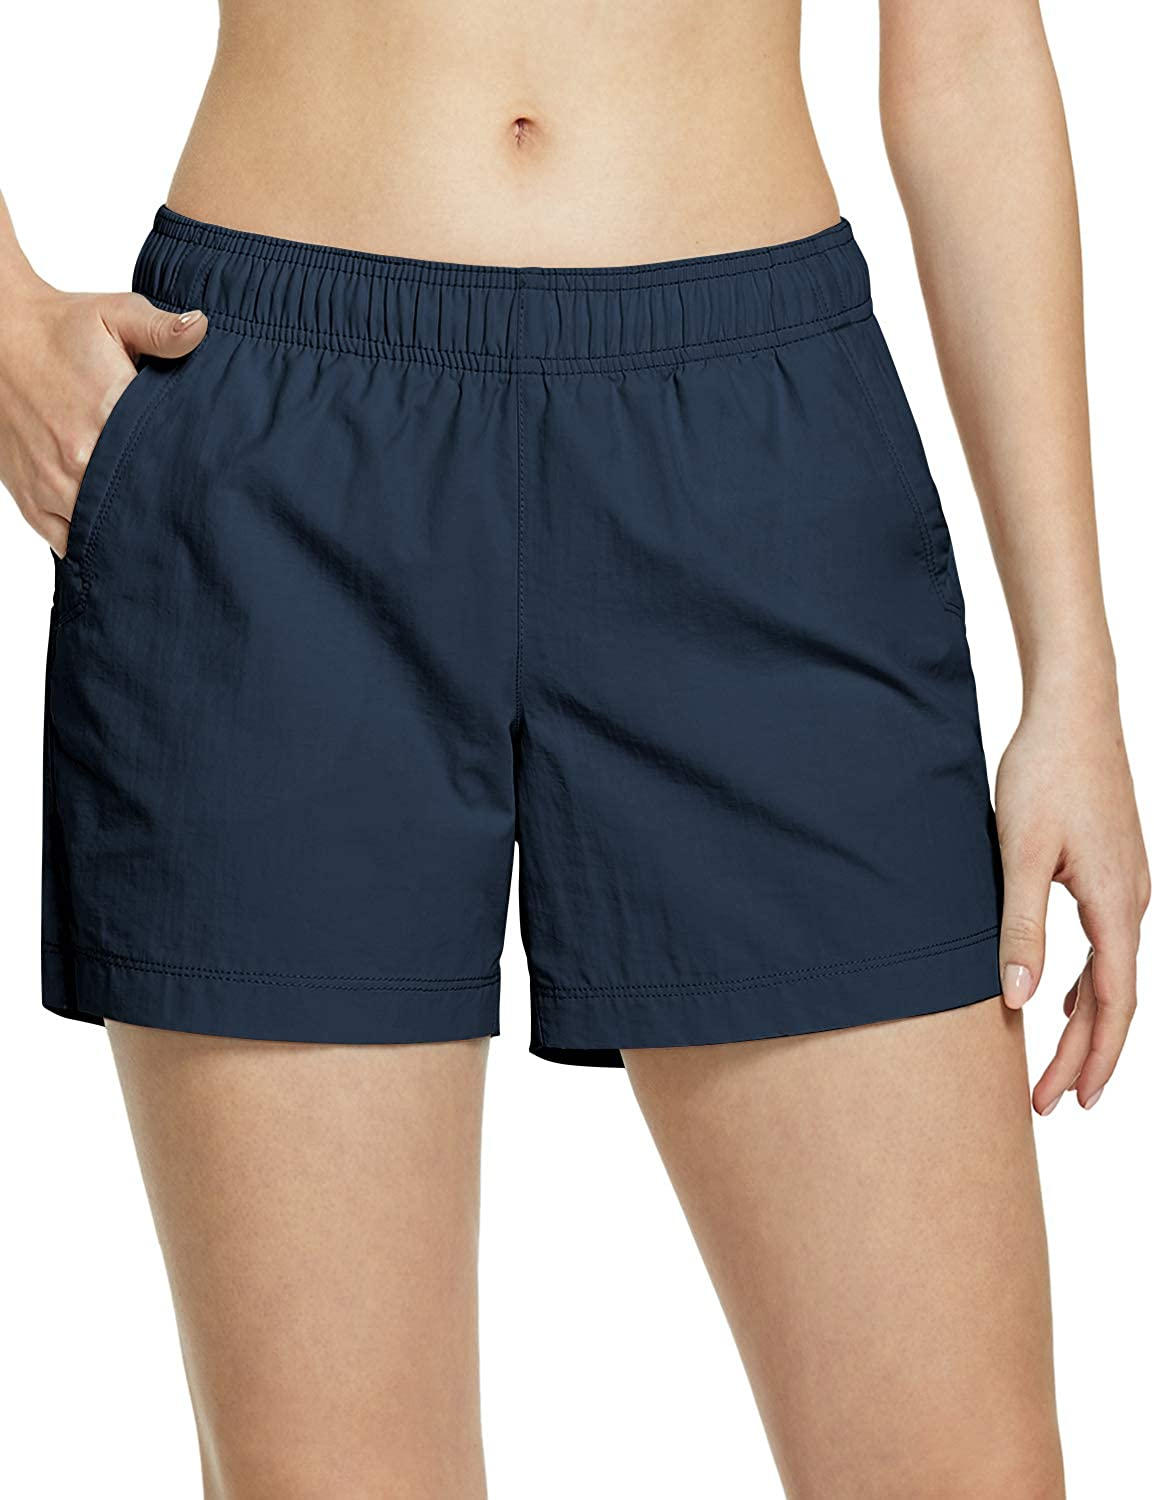 CQR Women's Hiking Shorts, Quick Dry Lightweight Travel Shorts, UPF 50+ UV/SPF Stretch Camping Shorts, Outdoor Apparel : Clothing